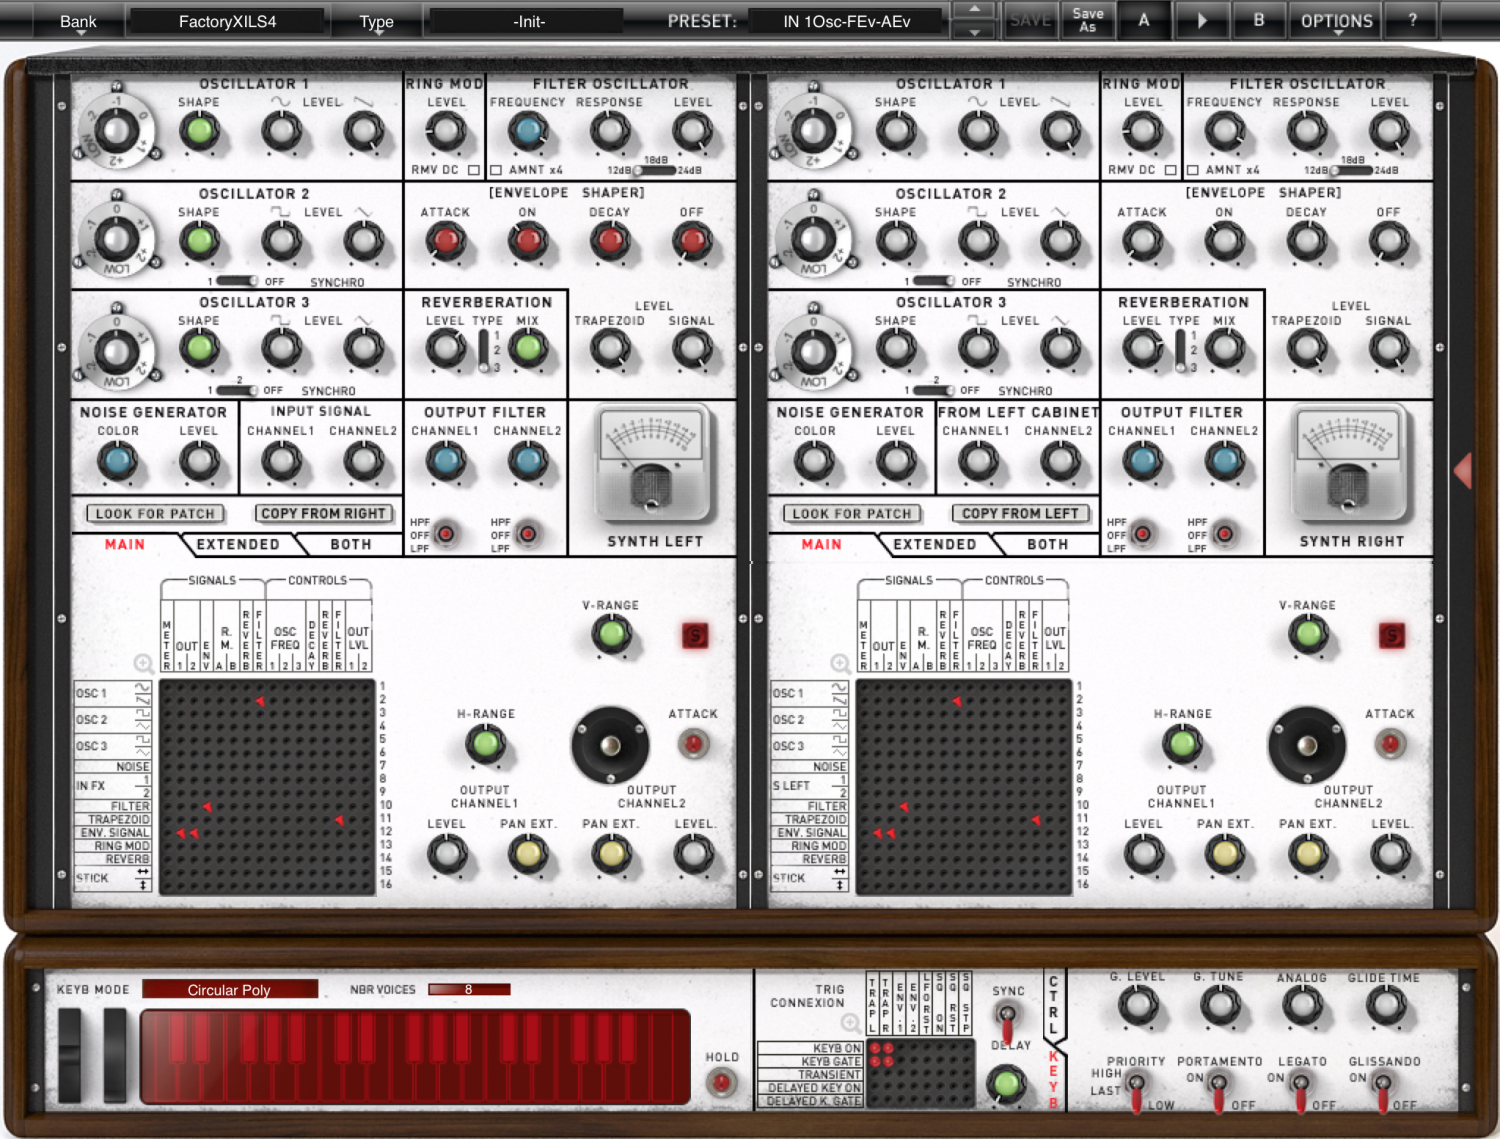 XILS-lab XILS 4 synthesizer [Review]